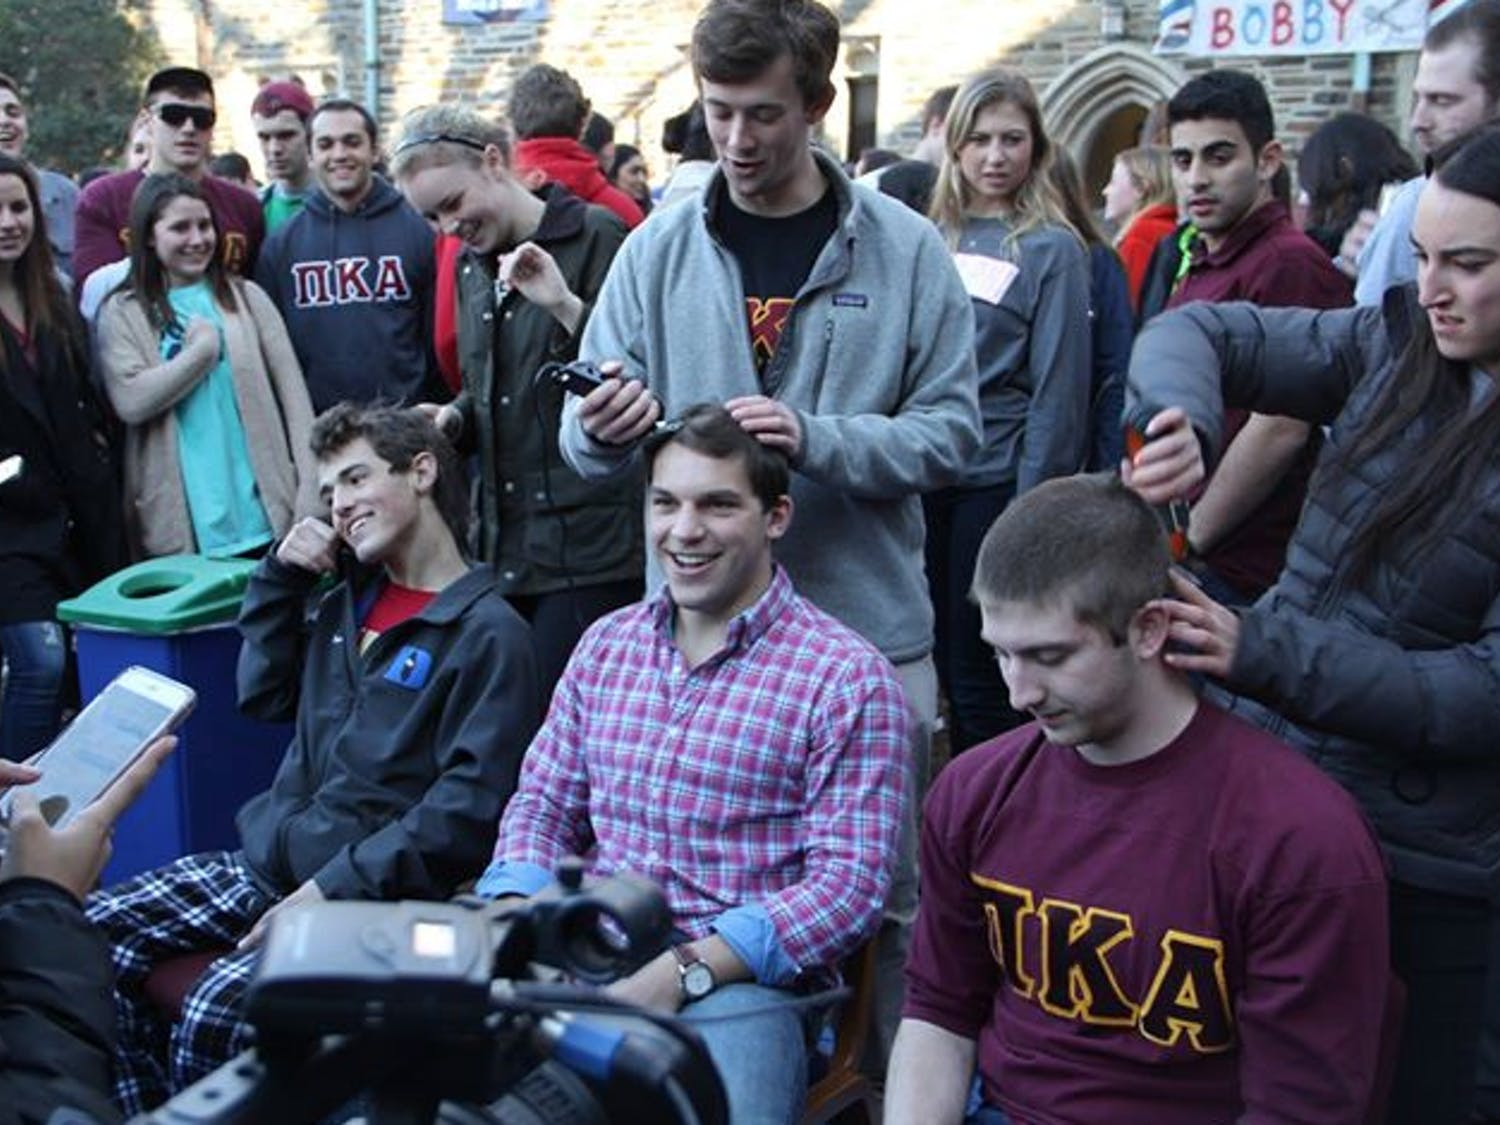 Last year, Pi Kappa Alpha raised more than $60,000 for cancer research andprograms at Duke Children's Hospital.